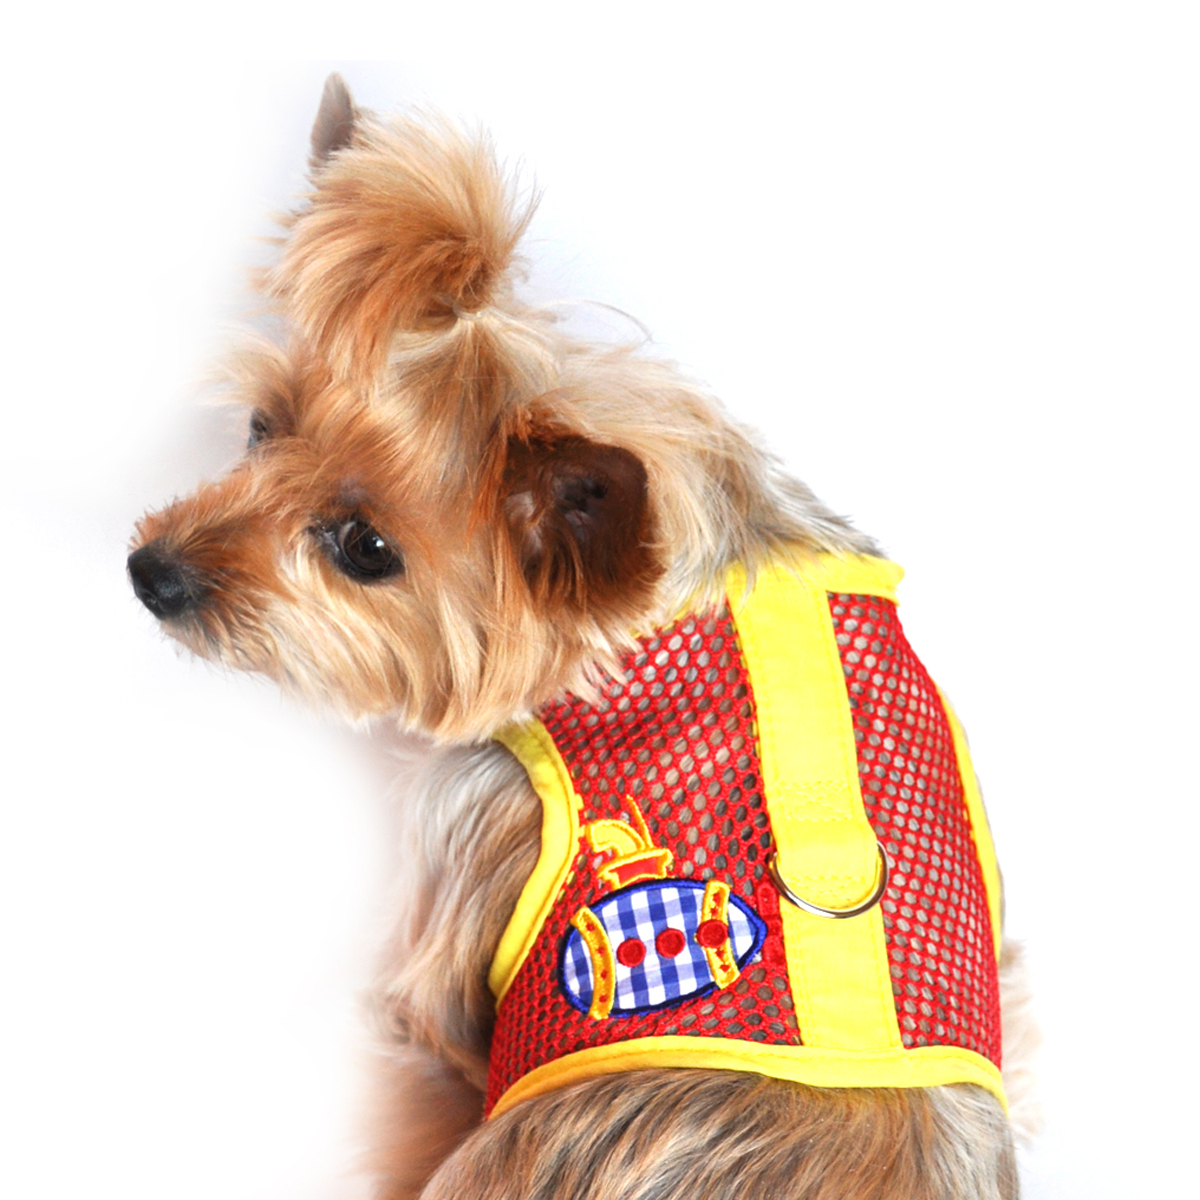 Gingham Submarine Mesh Dog Harness by Doggie Design - Yellow and Red starting at $5.00!